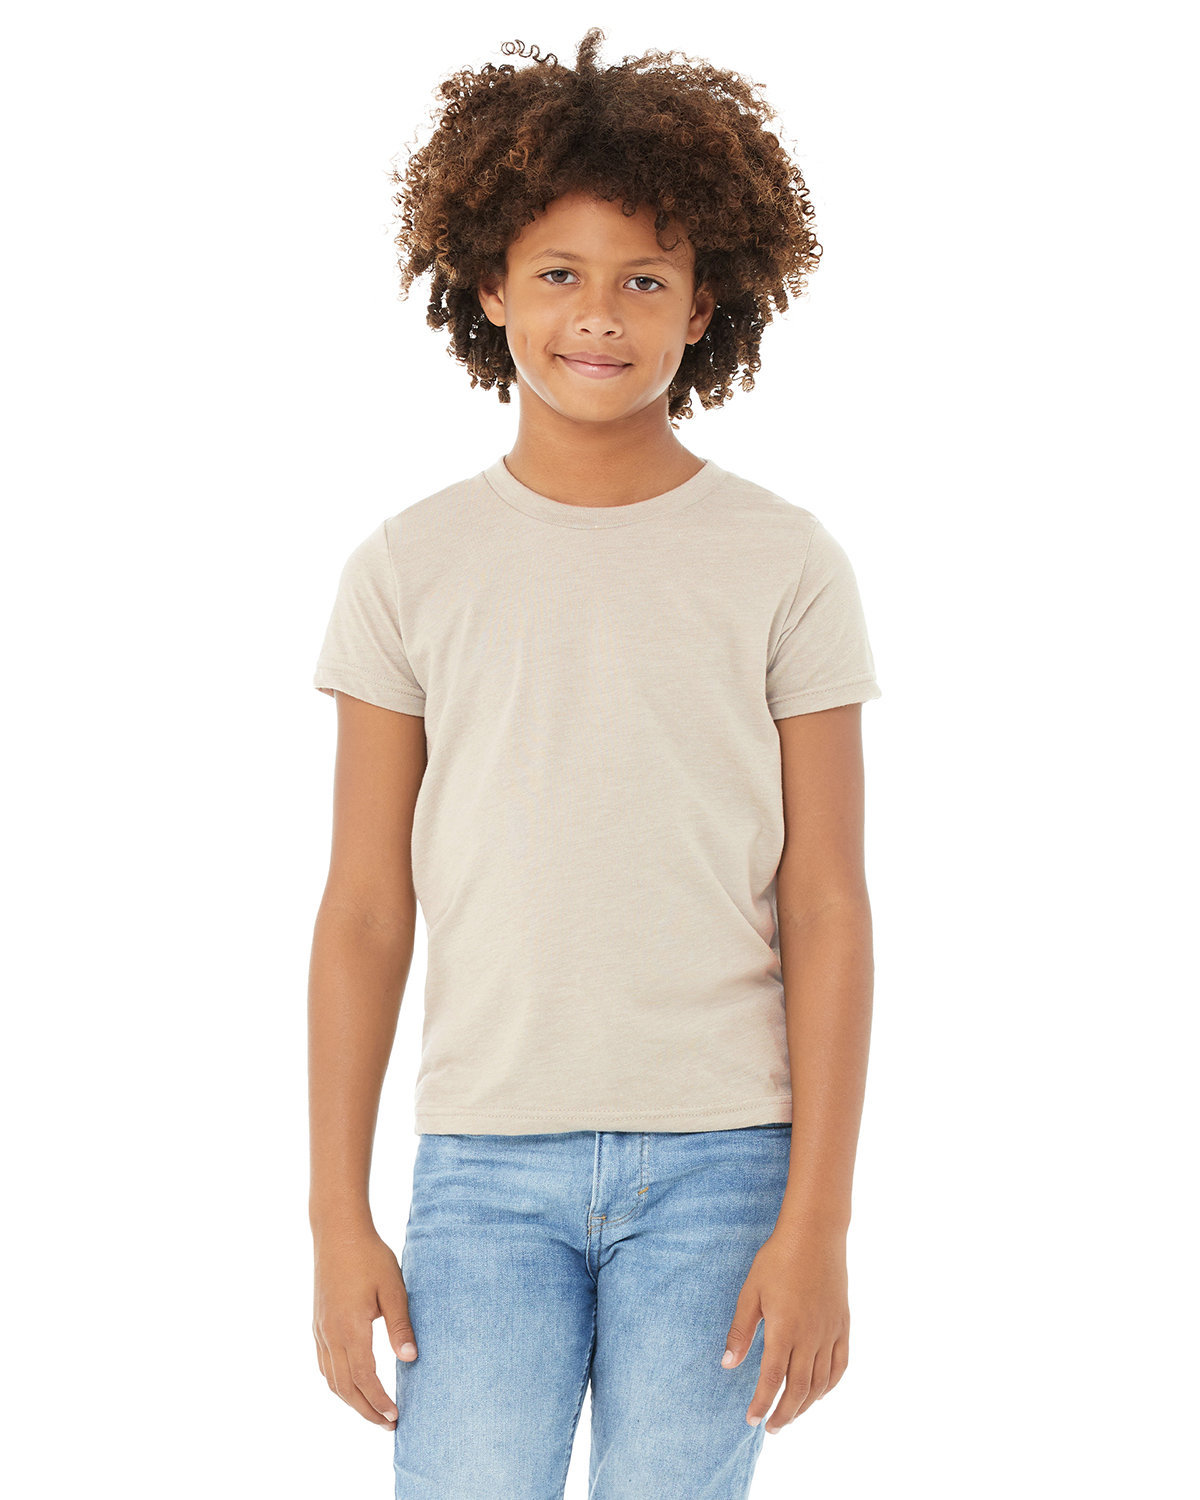 Bella + Canvas Youth Jersey T-Shirt HEATHER DUST